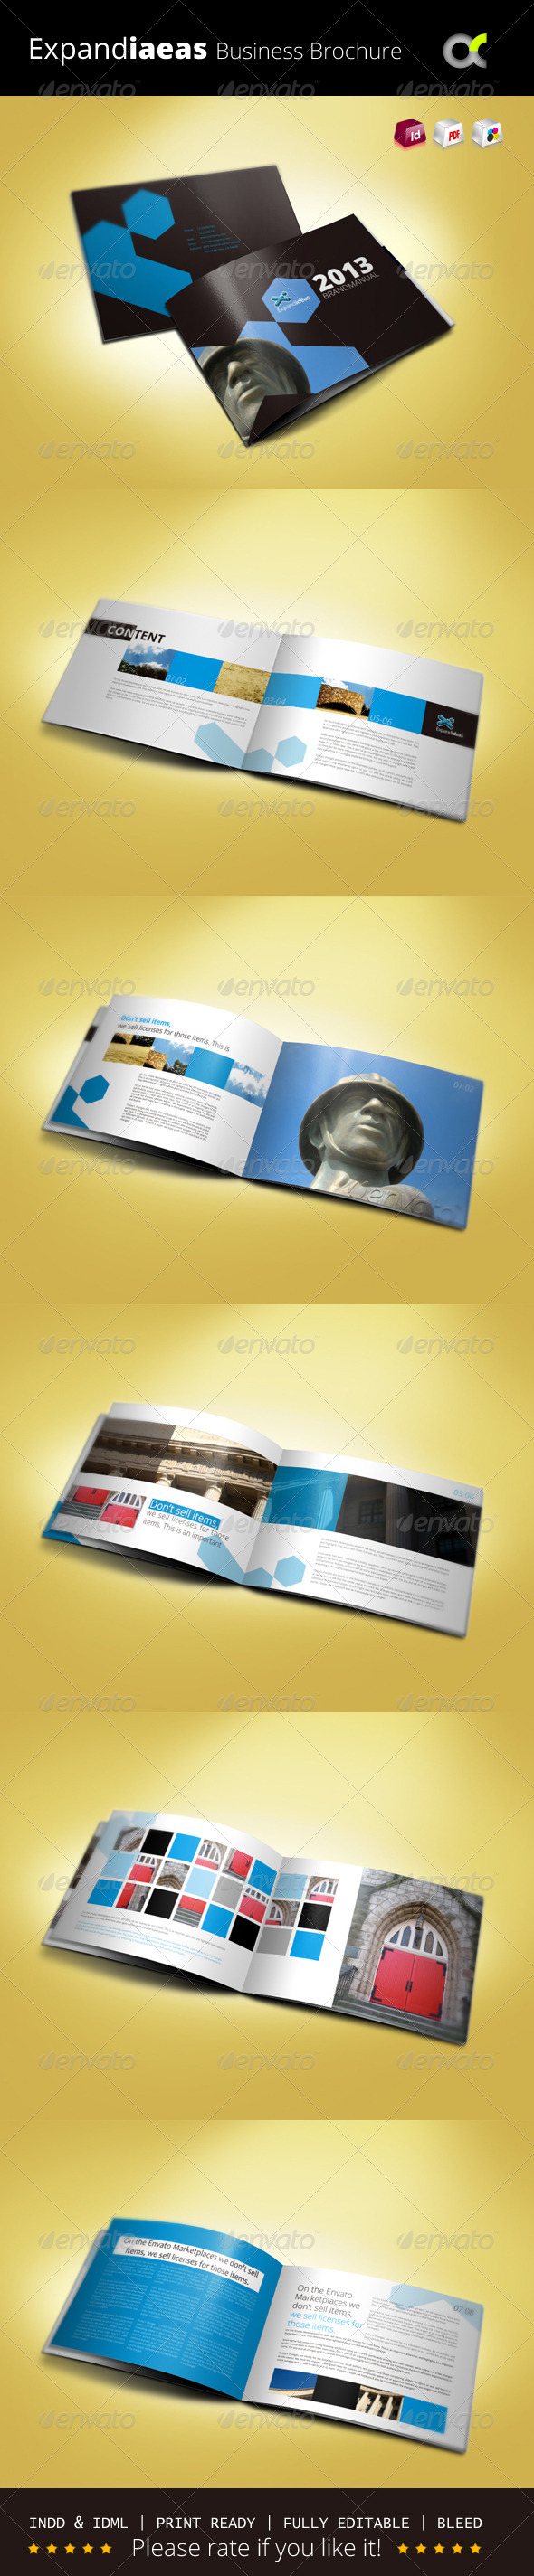 GraphicRiver Expandiaeas Business Brochure 5818210